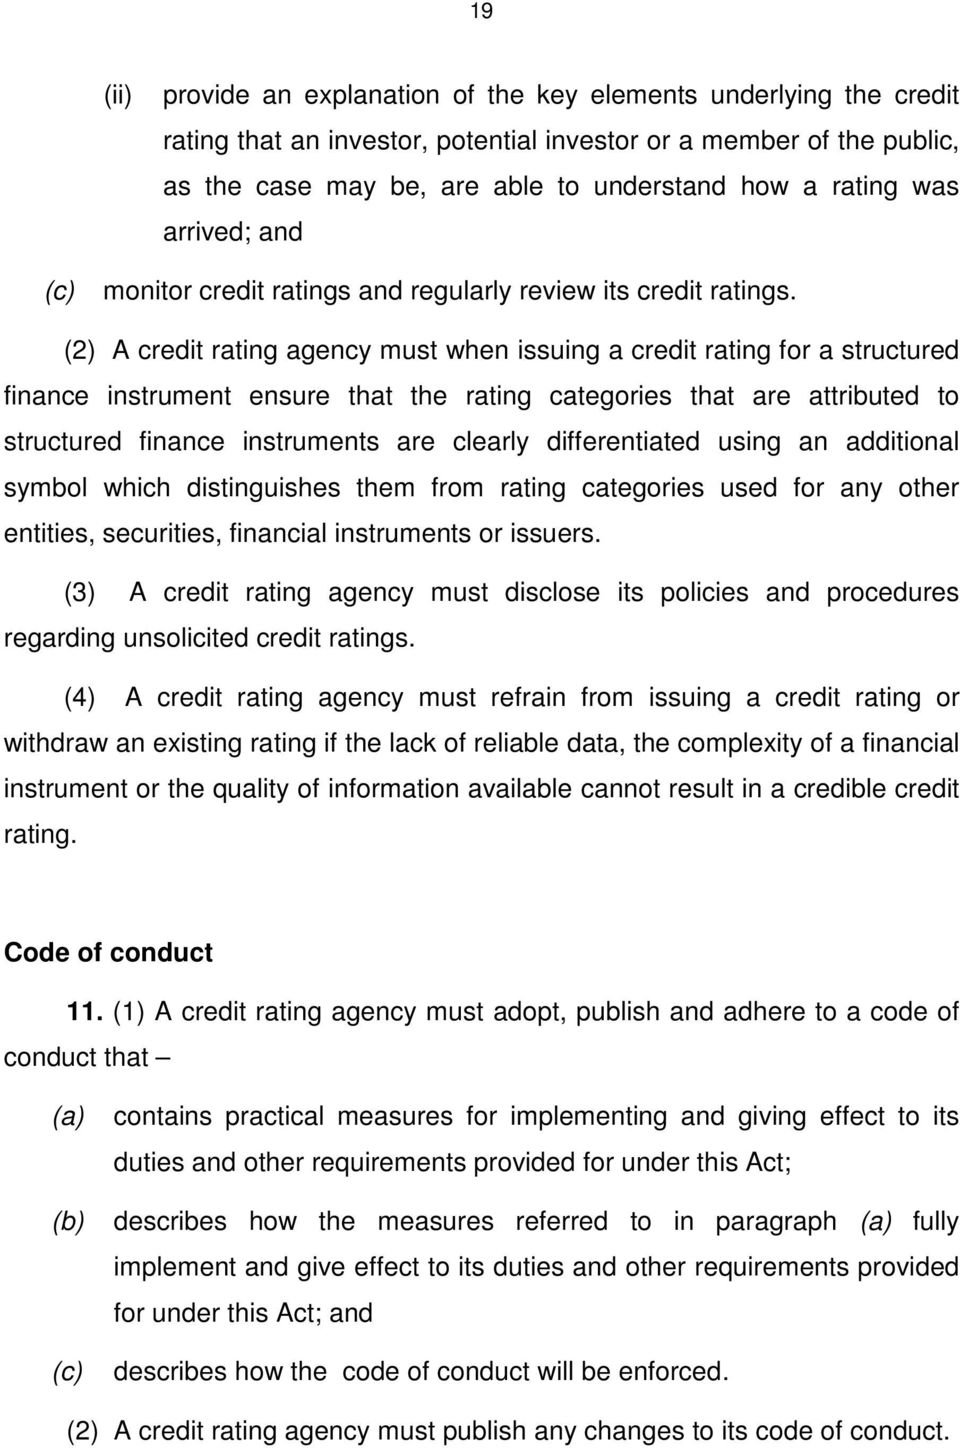 (2) A credit rating agency must when issuing a credit rating for a structured finance instrument ensure that the rating categories that are attributed to structured finance instruments are clearly